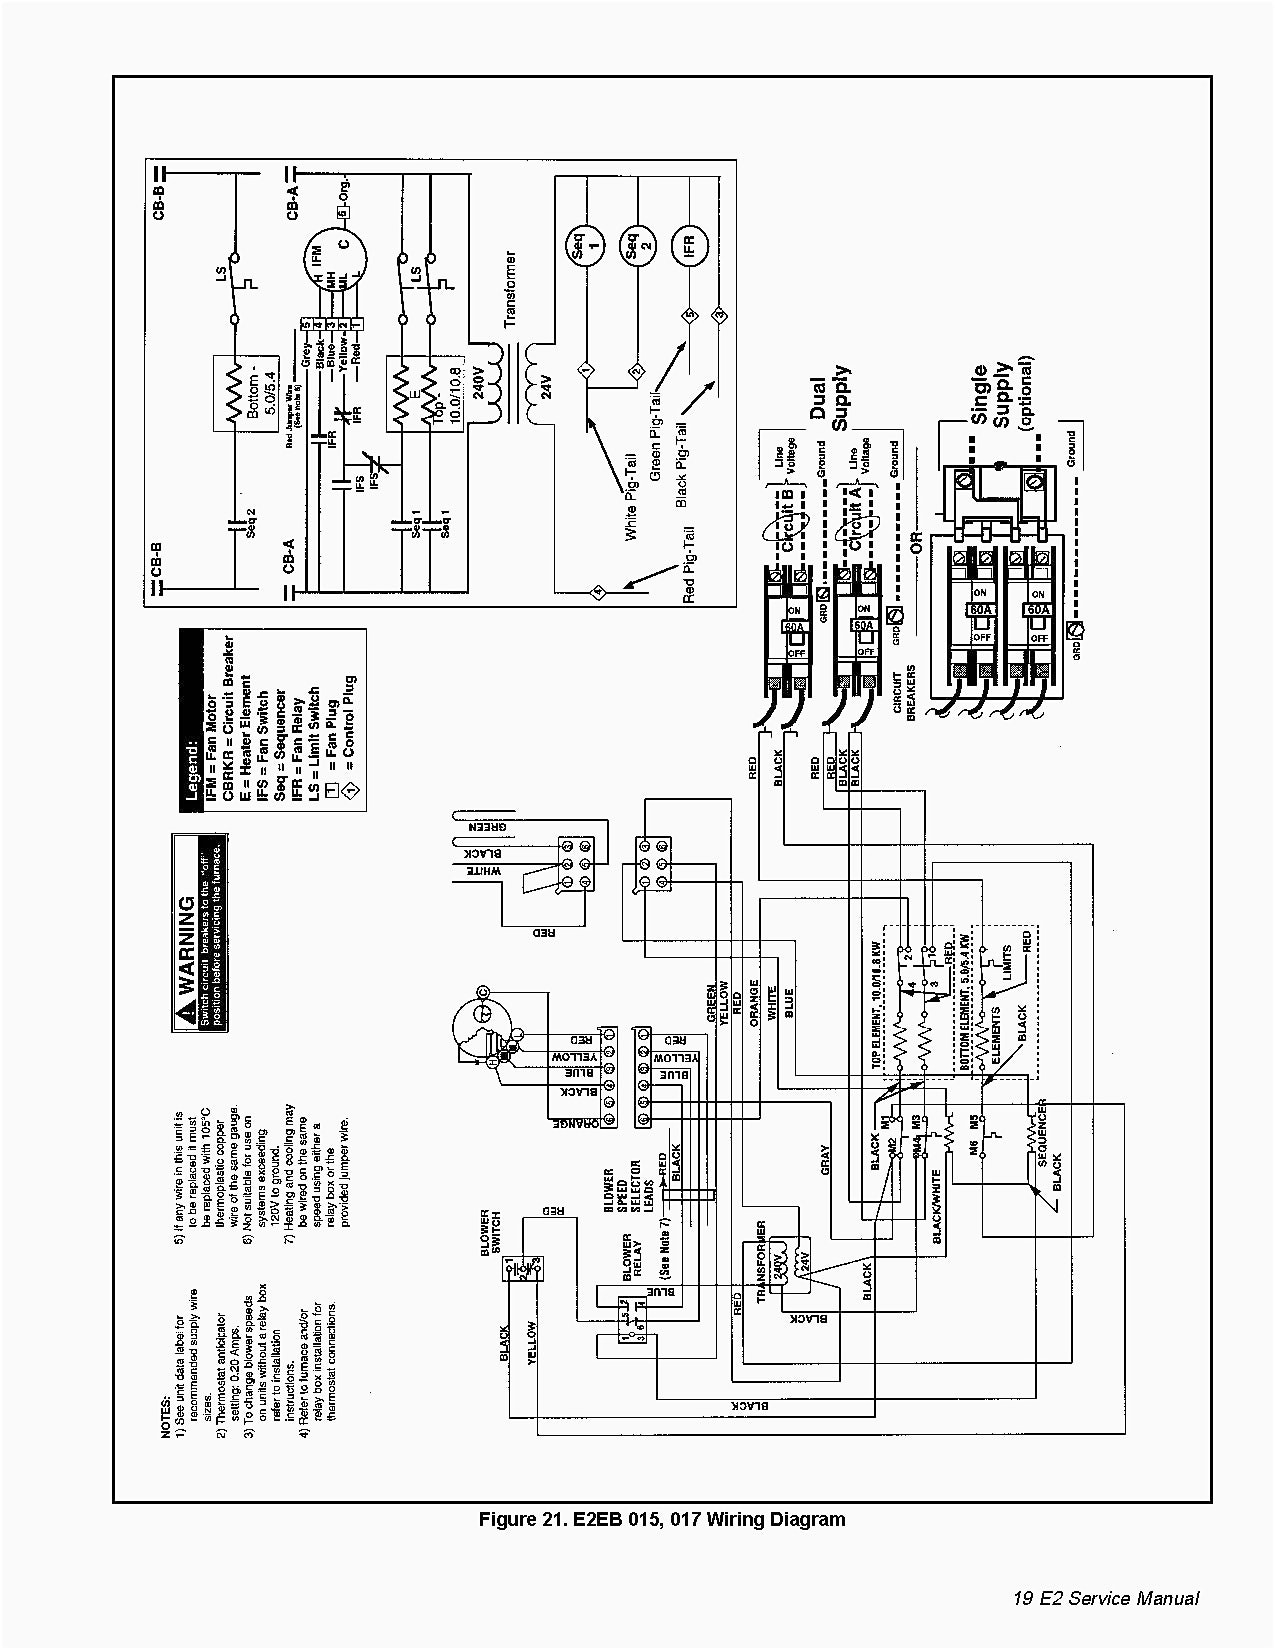 Nordyne furnace wiring diagram manual e2eb 015ha bright wire with